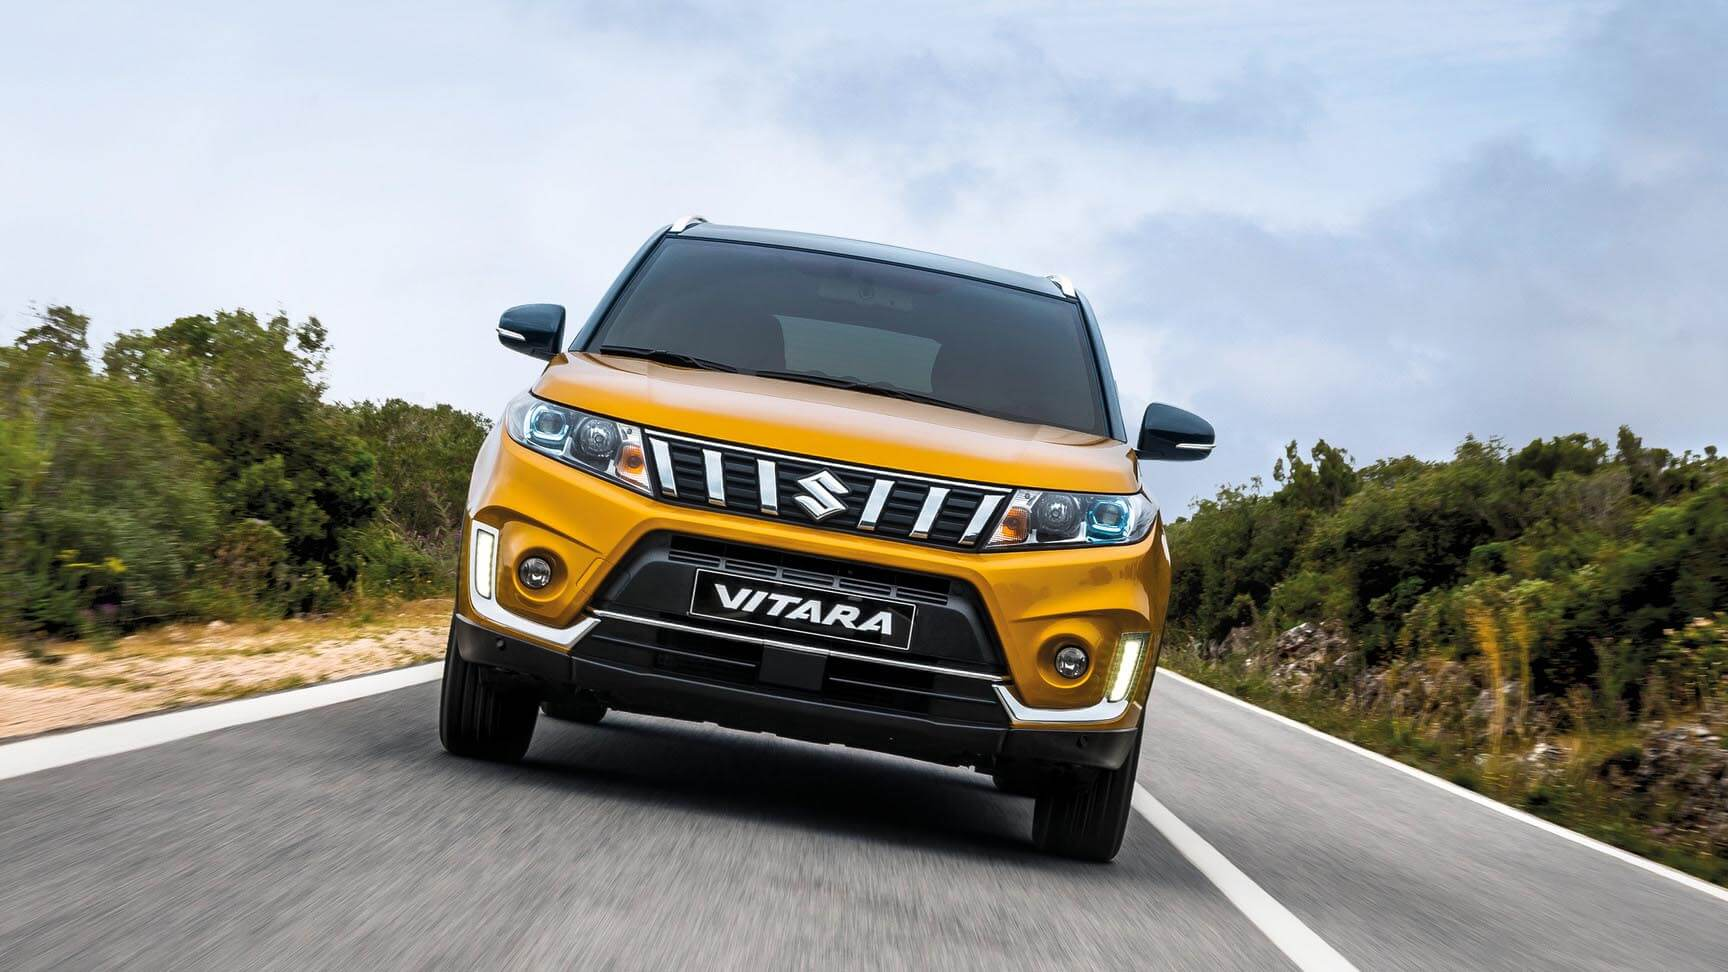 Vitara Stronger. Bolder. Styled for any occasion.